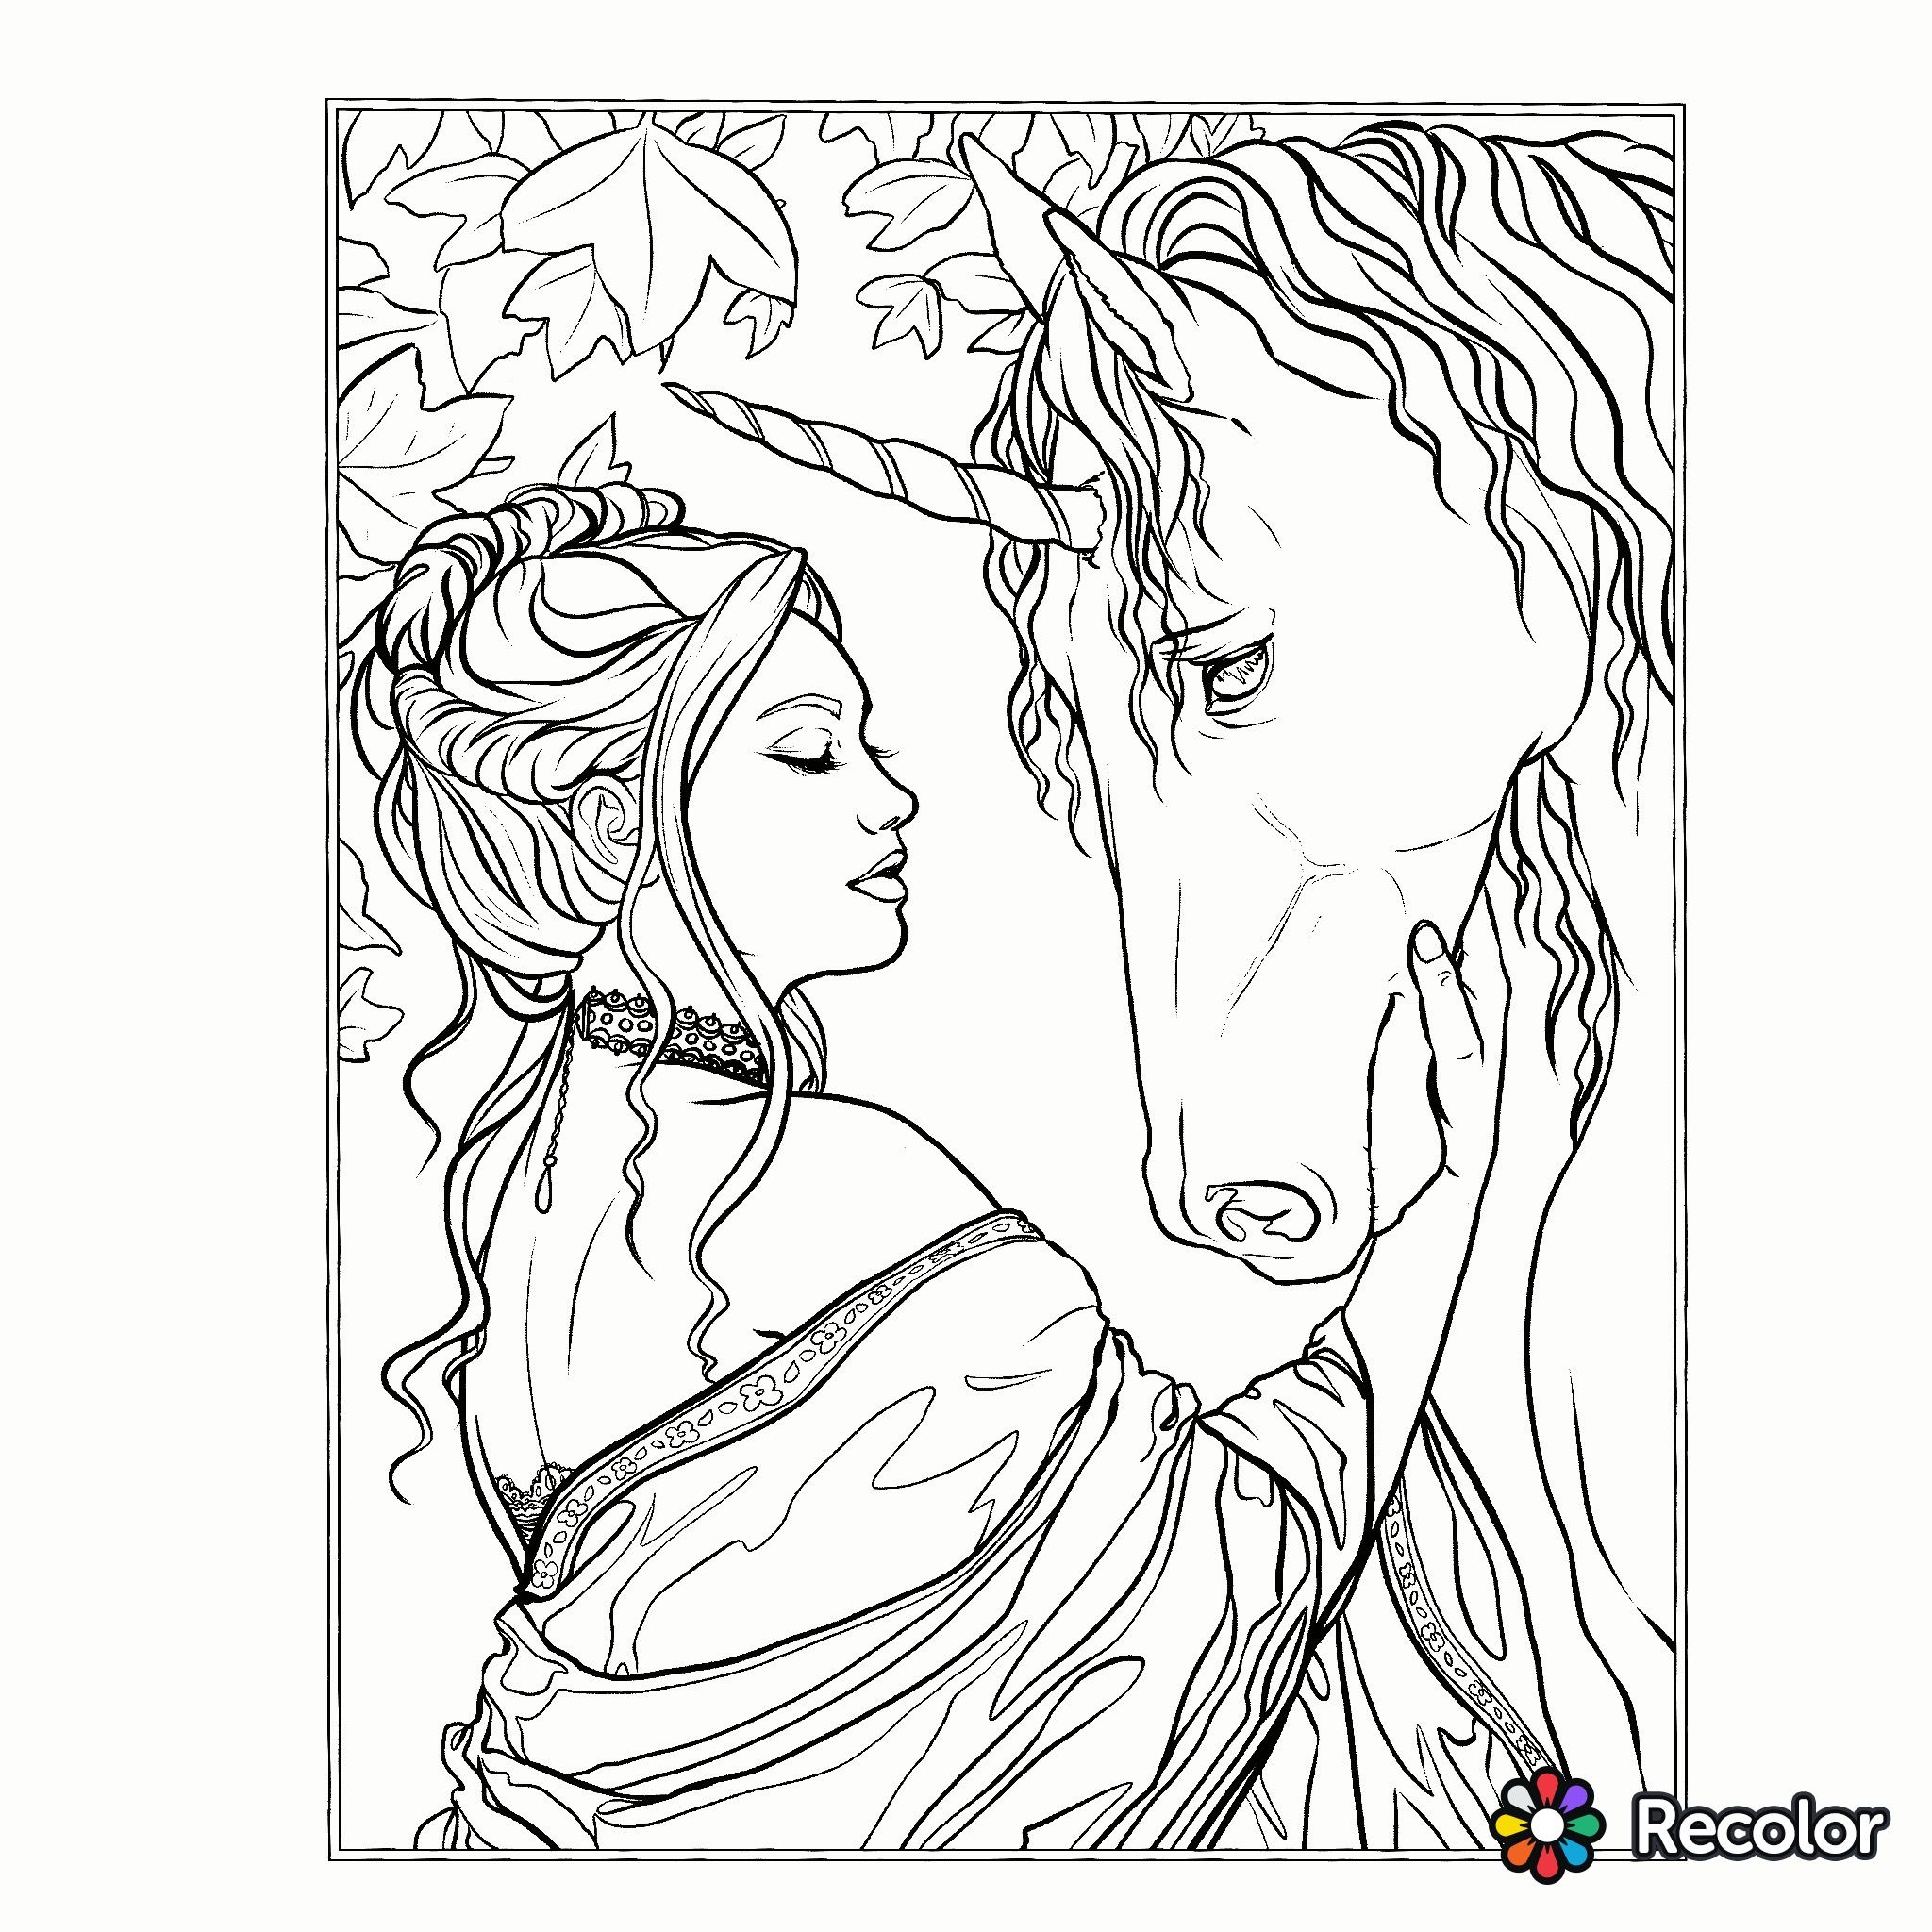 Unicorn coloring page | Fantasy Coloring Pages for Adults ...